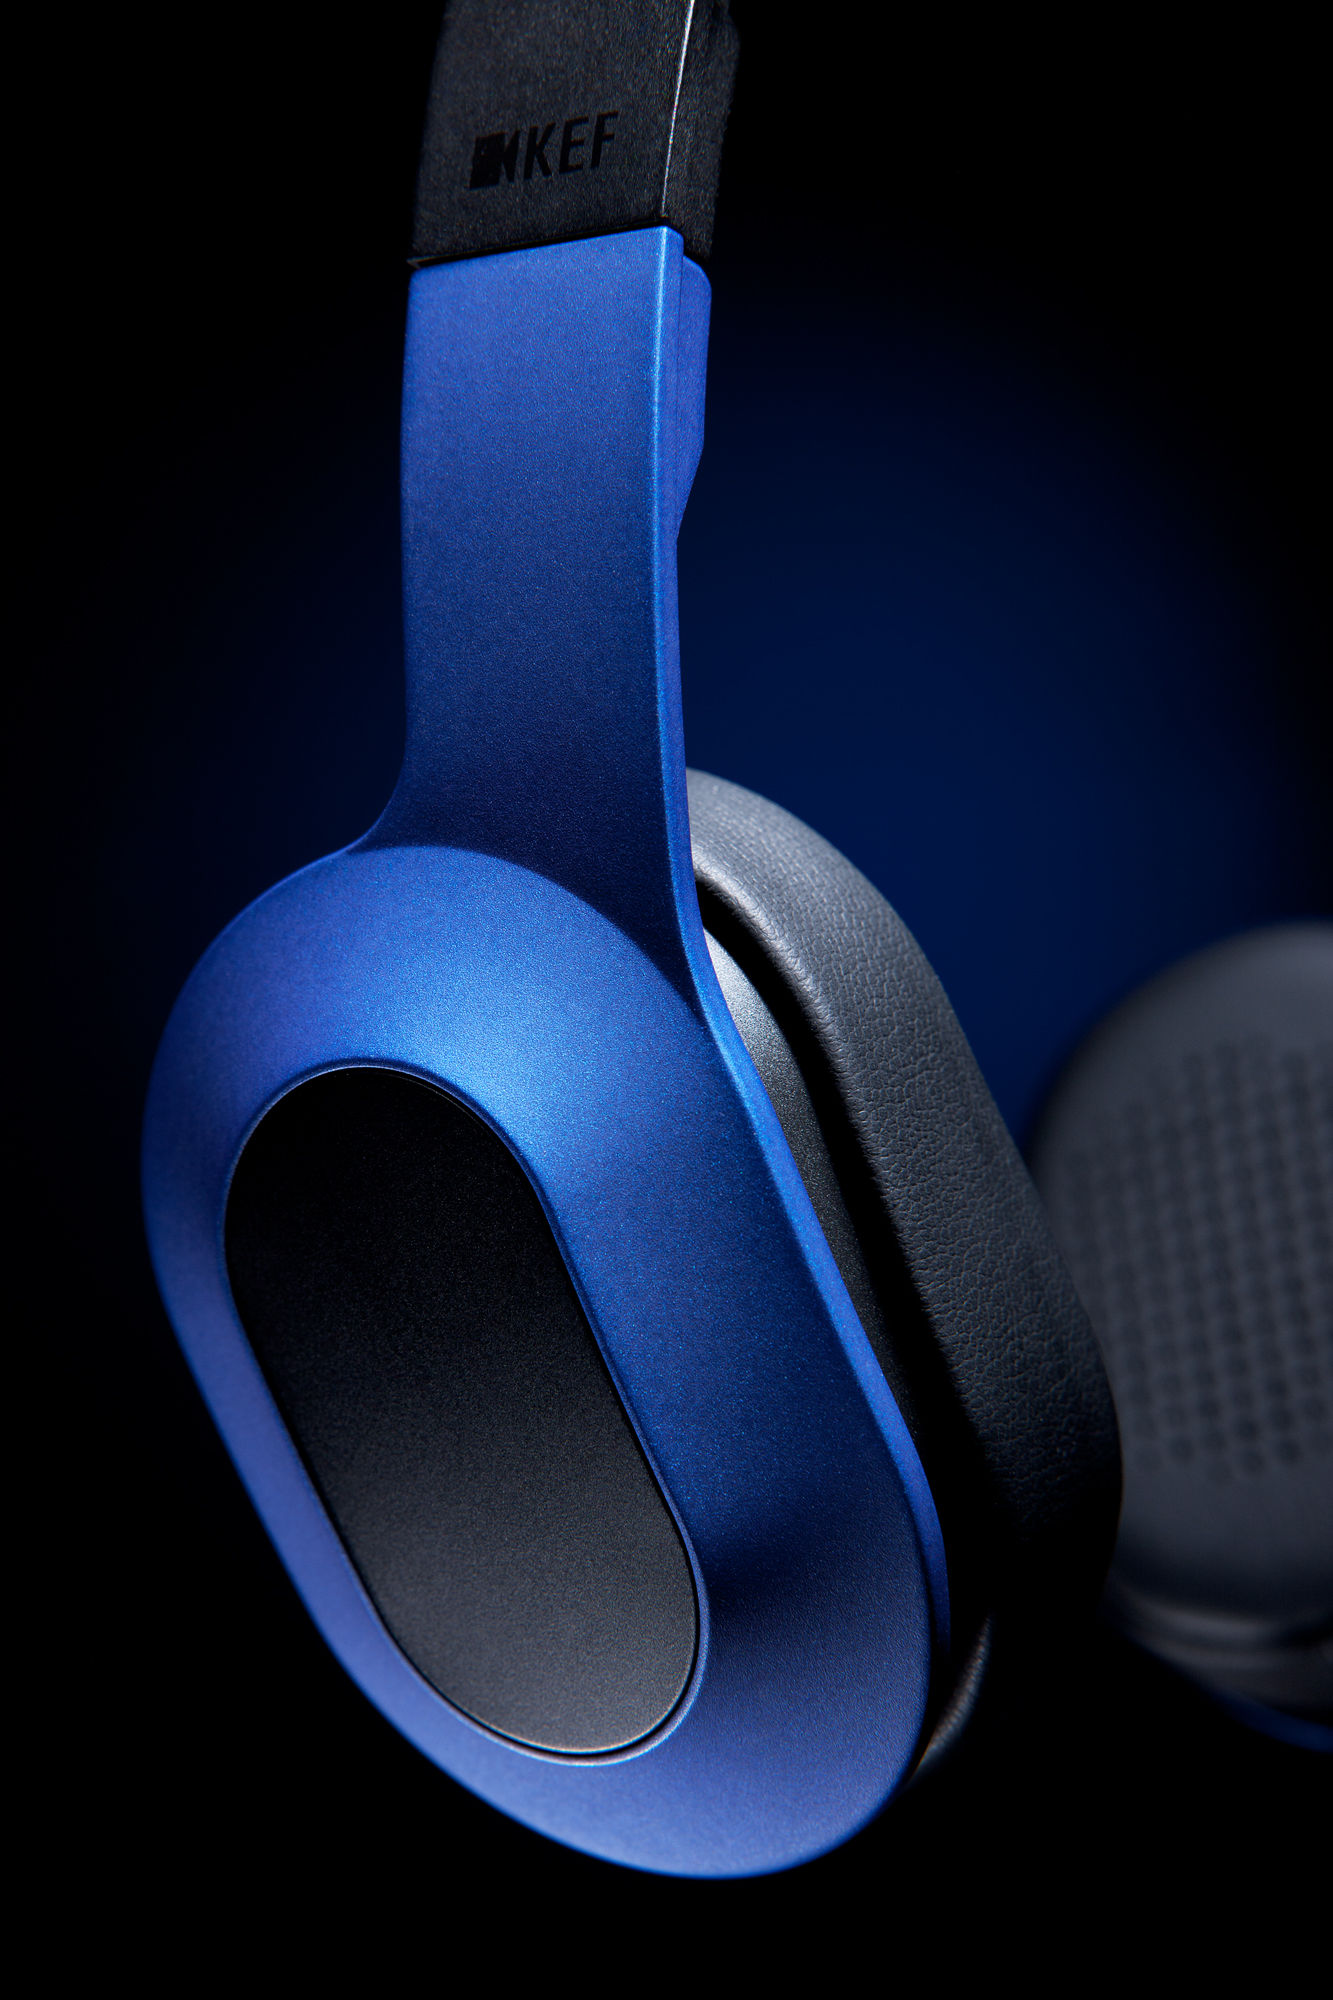 kef m400. i enjoyed making these essentially very basic shots of the kef m400 headphones, and look forward to more. kef